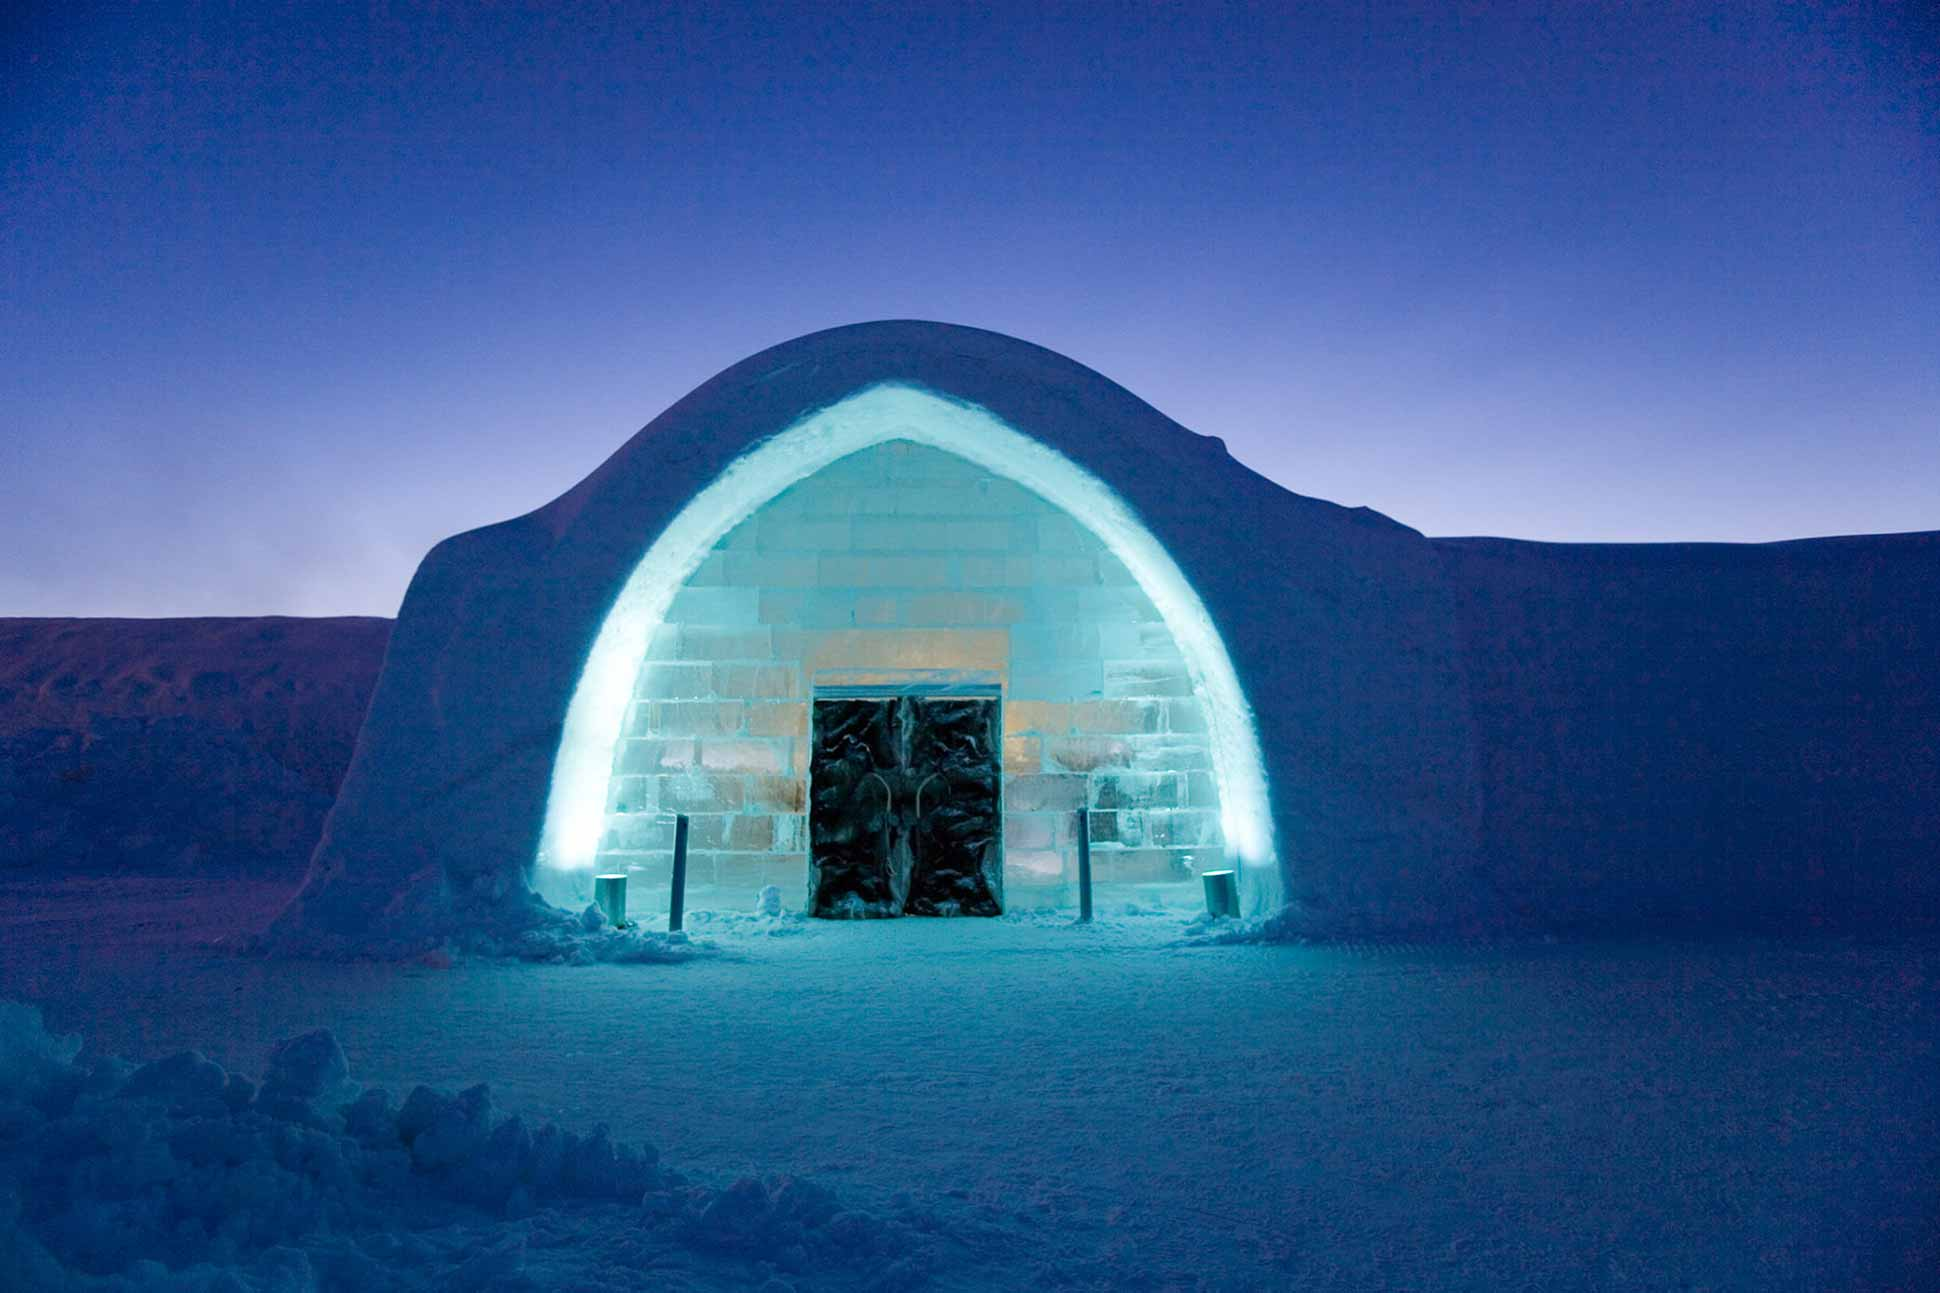 icehotel jukkasjarvi sweden out there magazine luxury and experiential travel inspiration. Black Bedroom Furniture Sets. Home Design Ideas